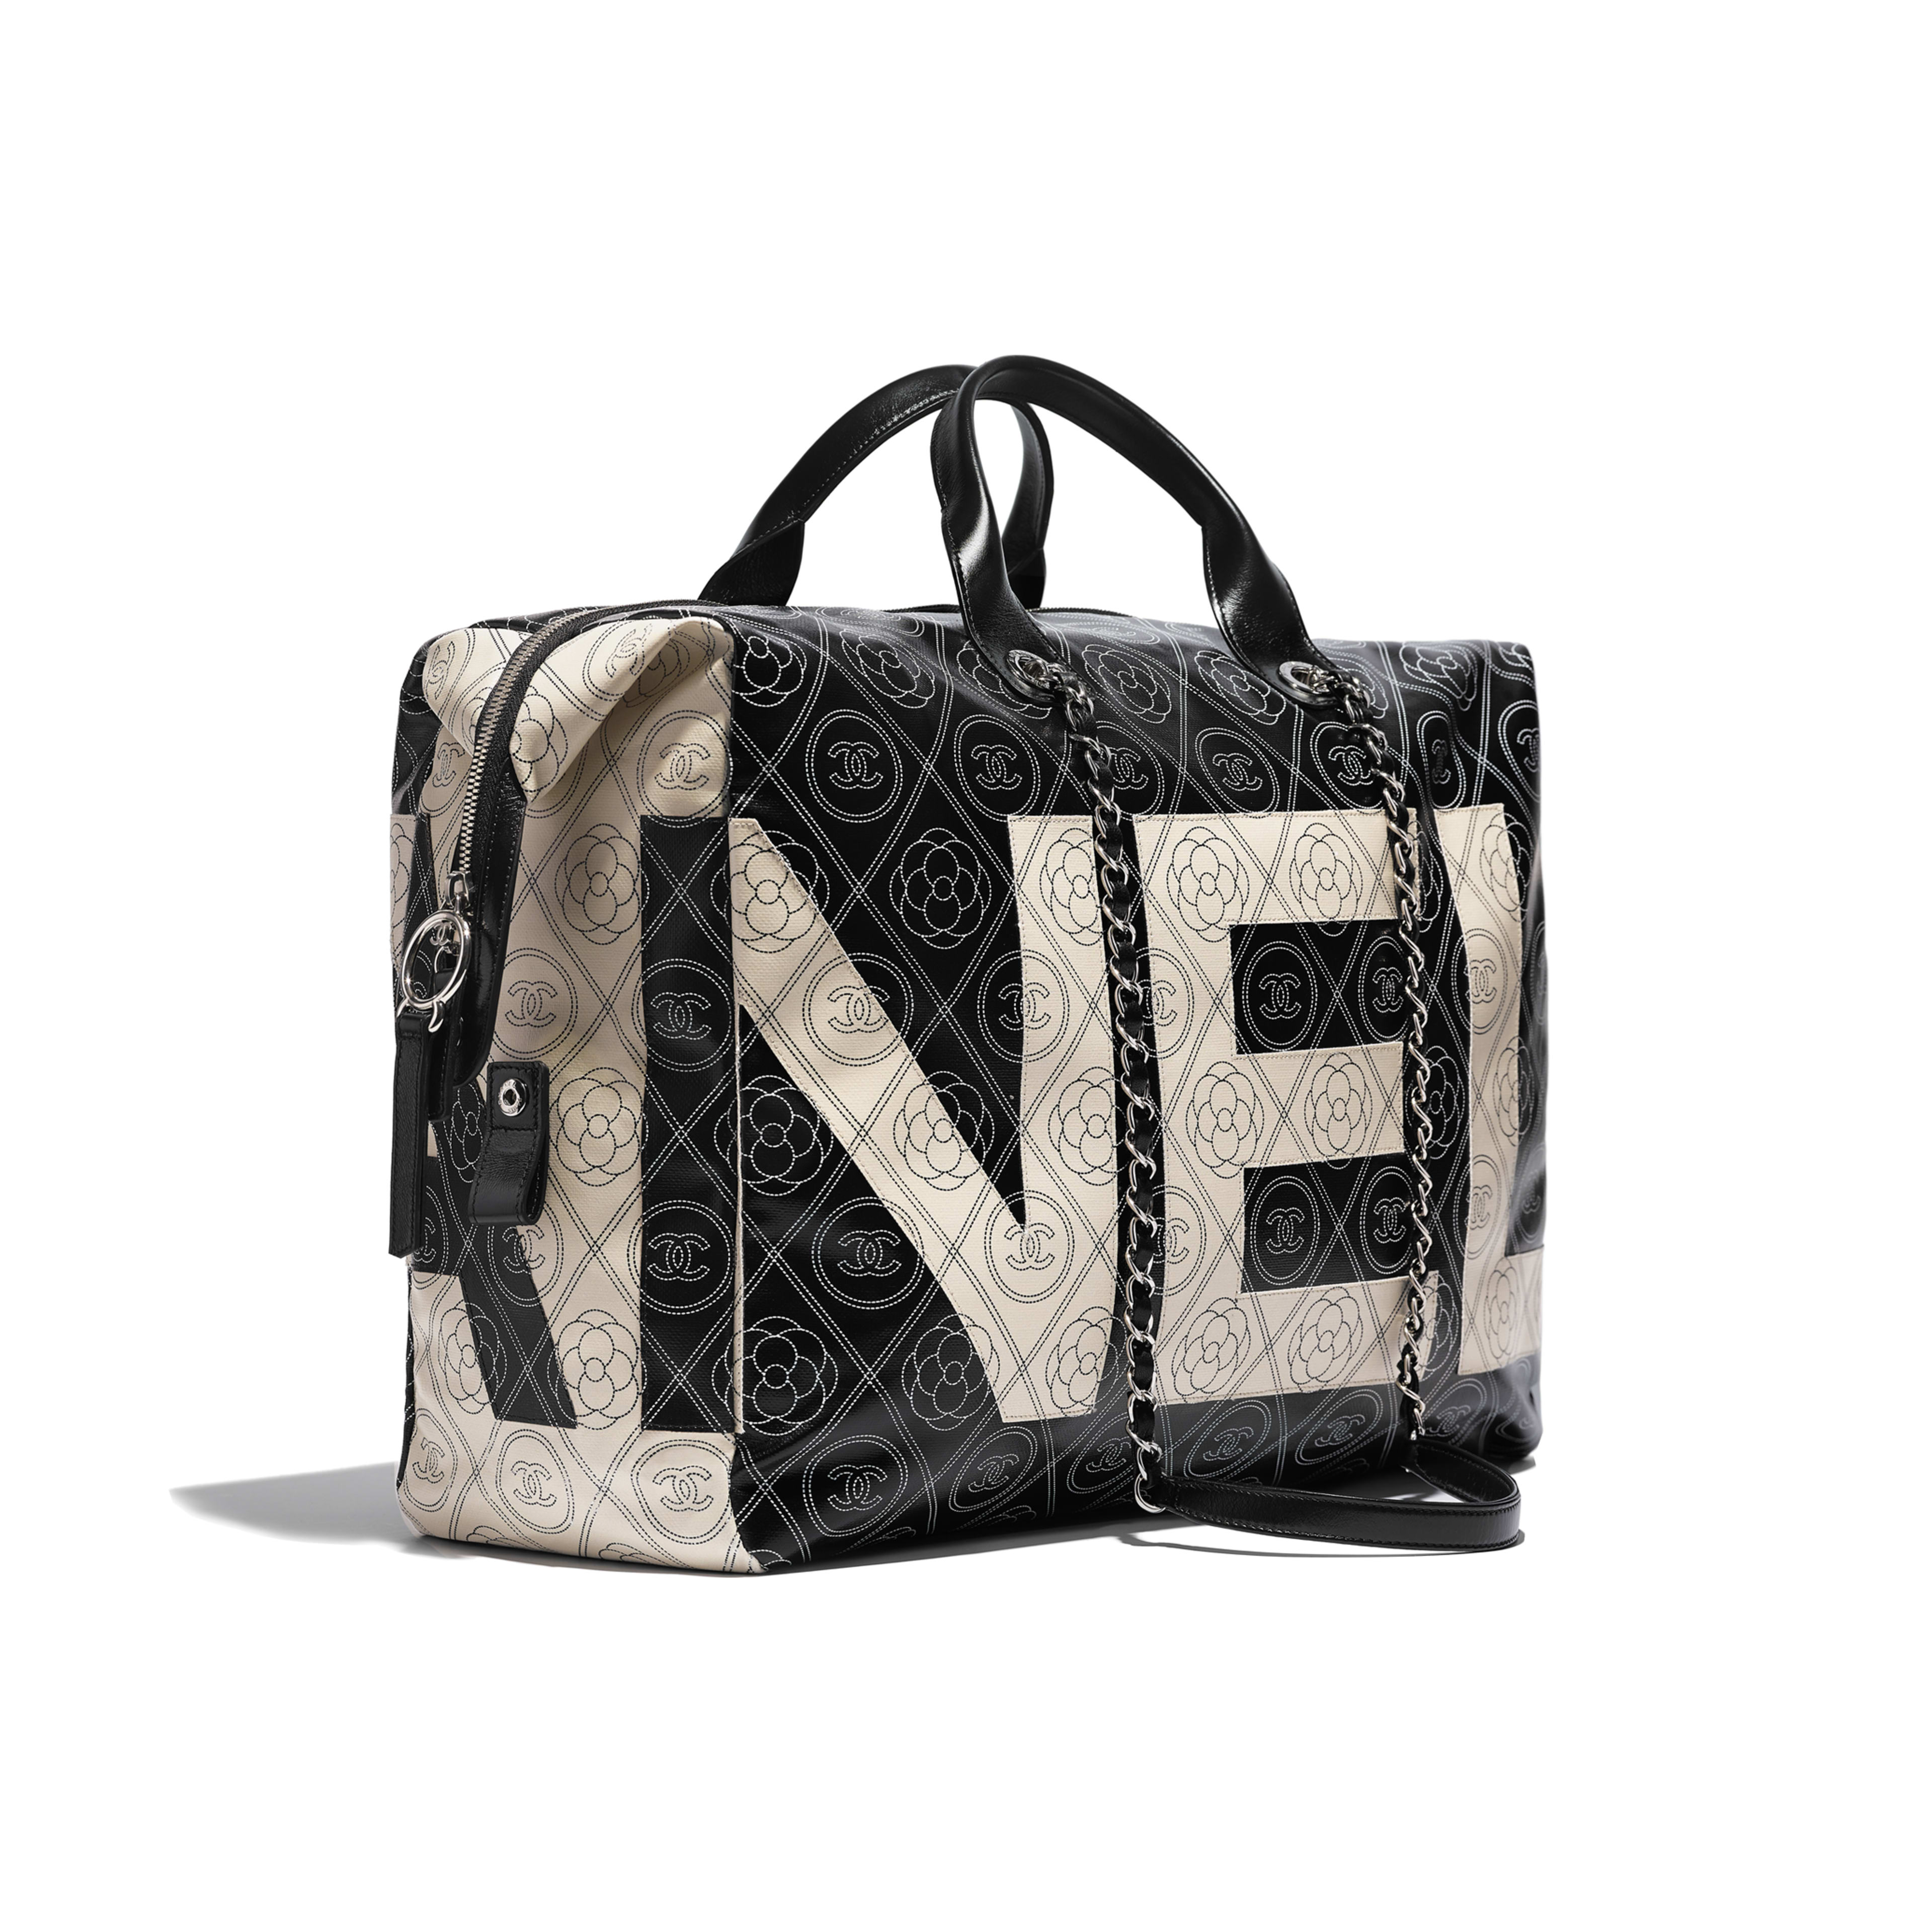 Bowling Bag Printed Canvas, Calfskin & Silver-Tone Metal Black & Beige -                                            view 3 - see full sized version